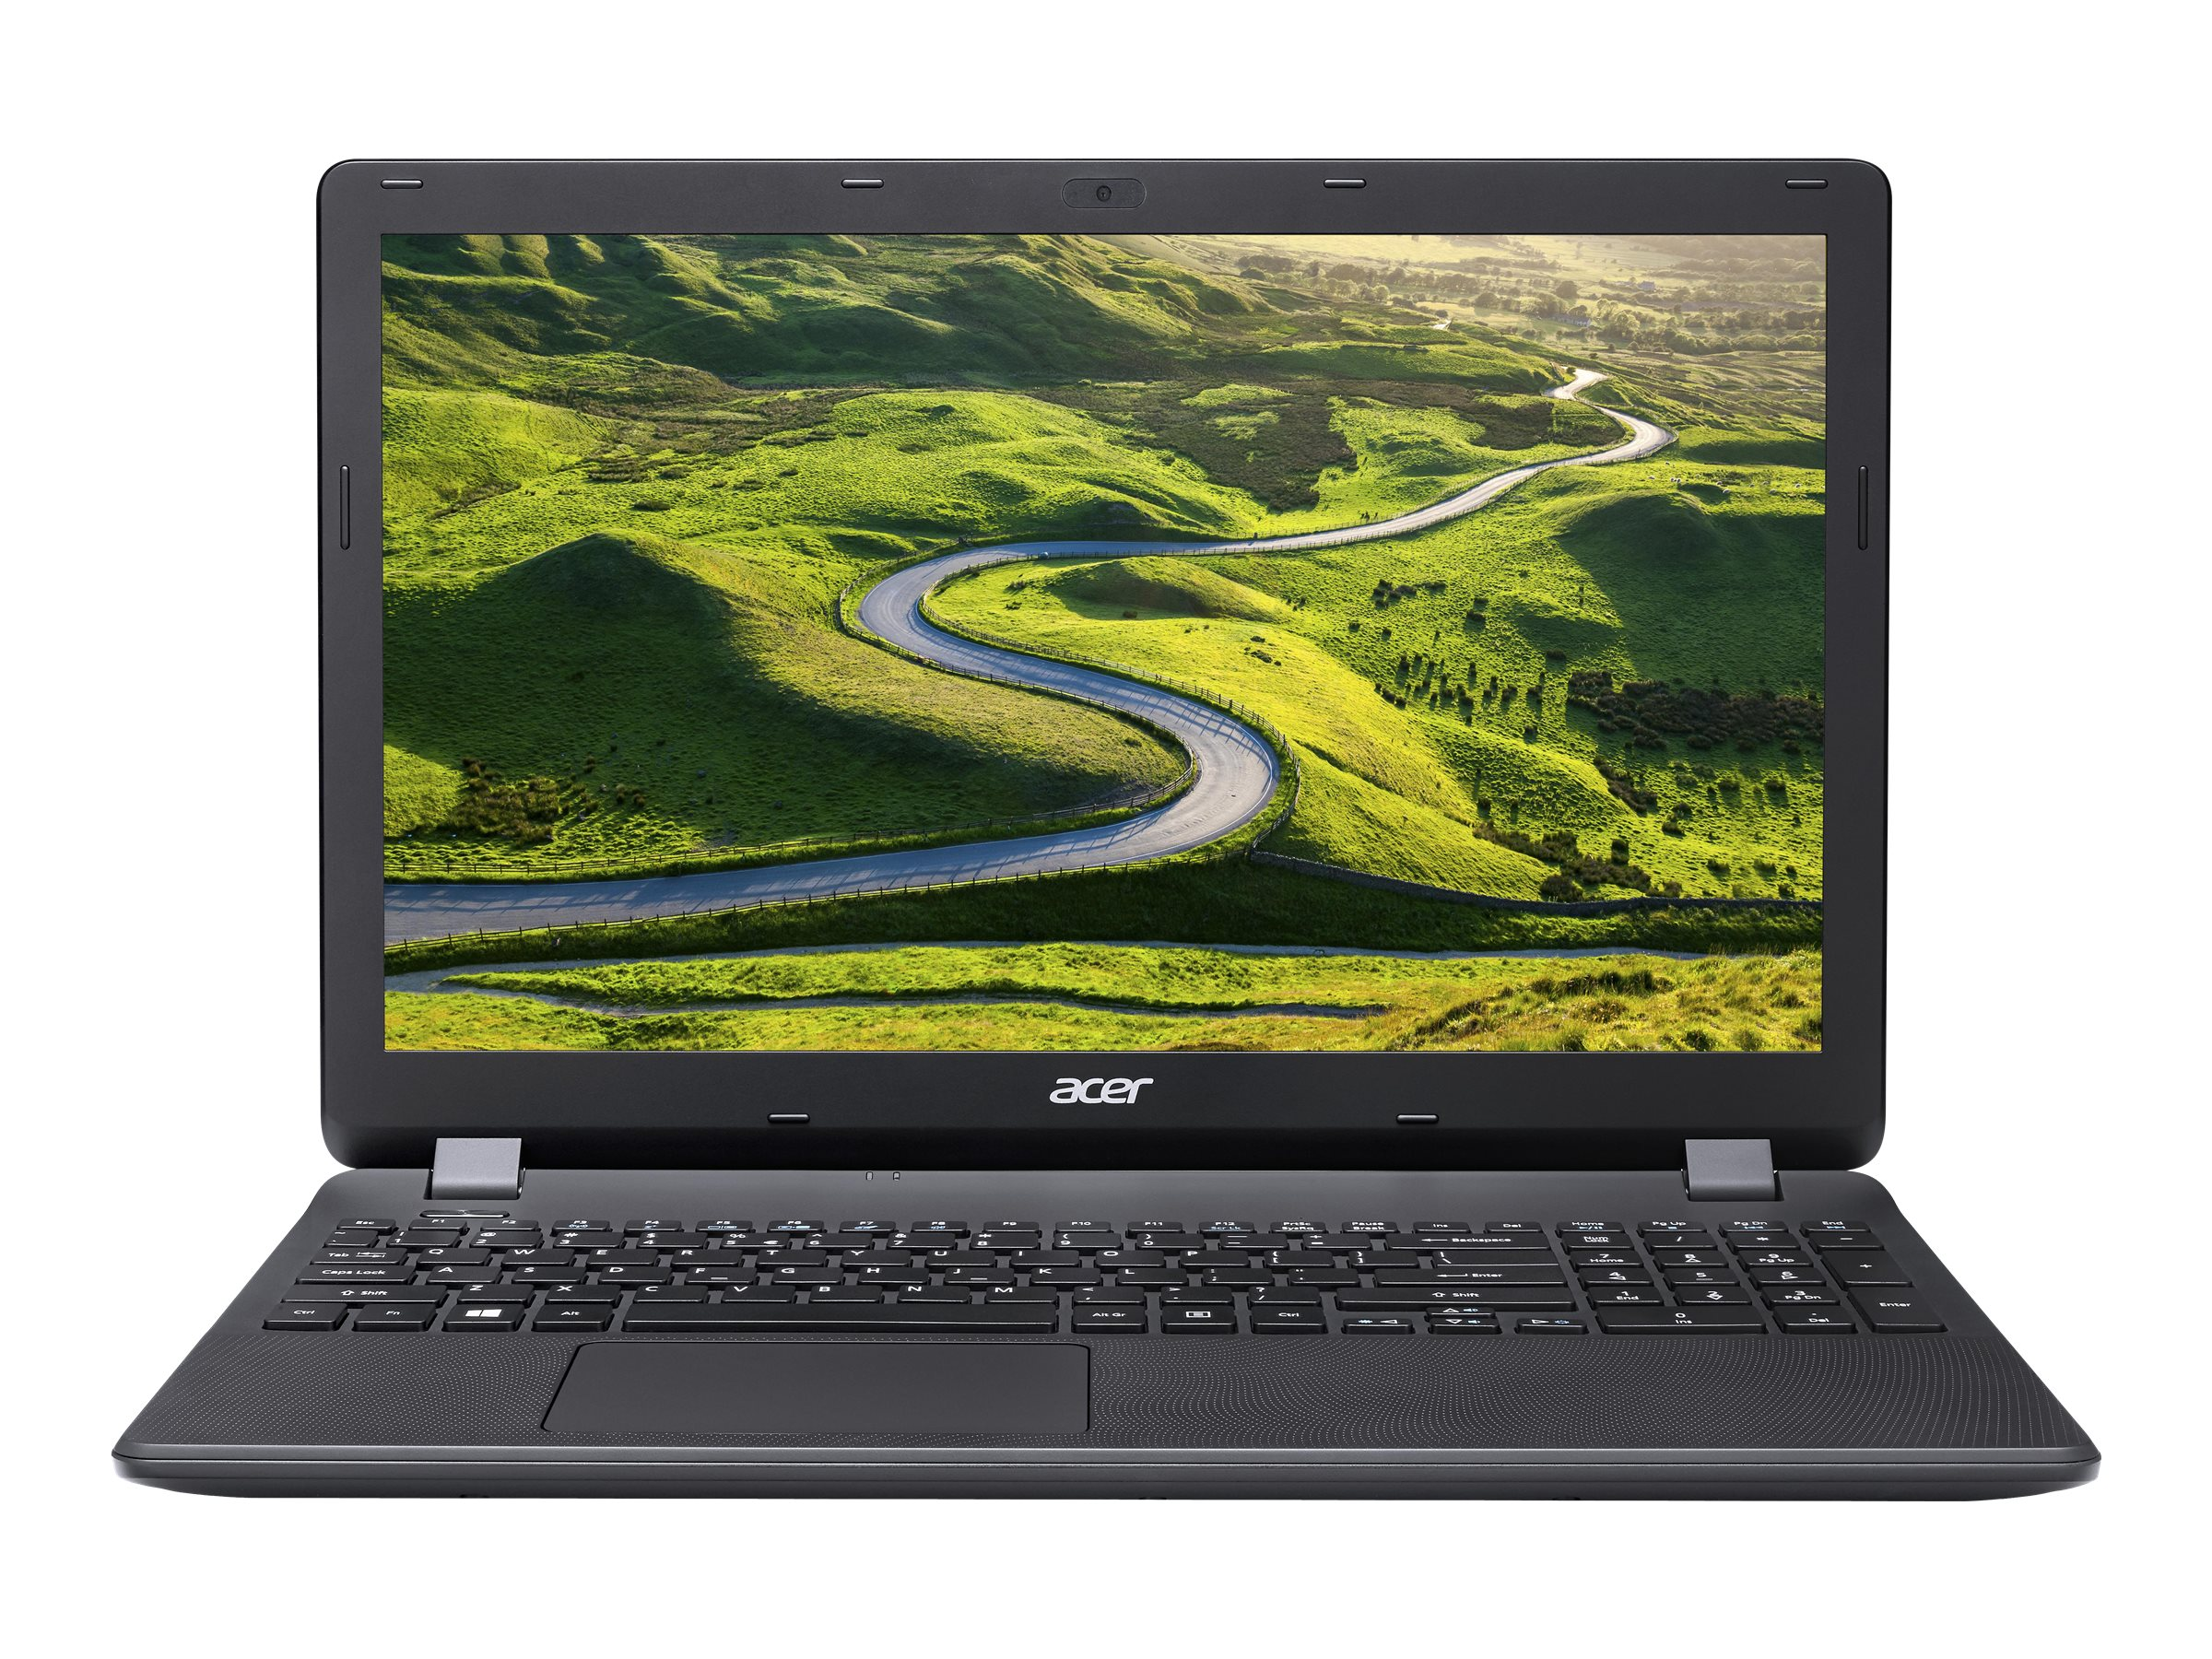 Acer NX.GCEAA.003 Image 2